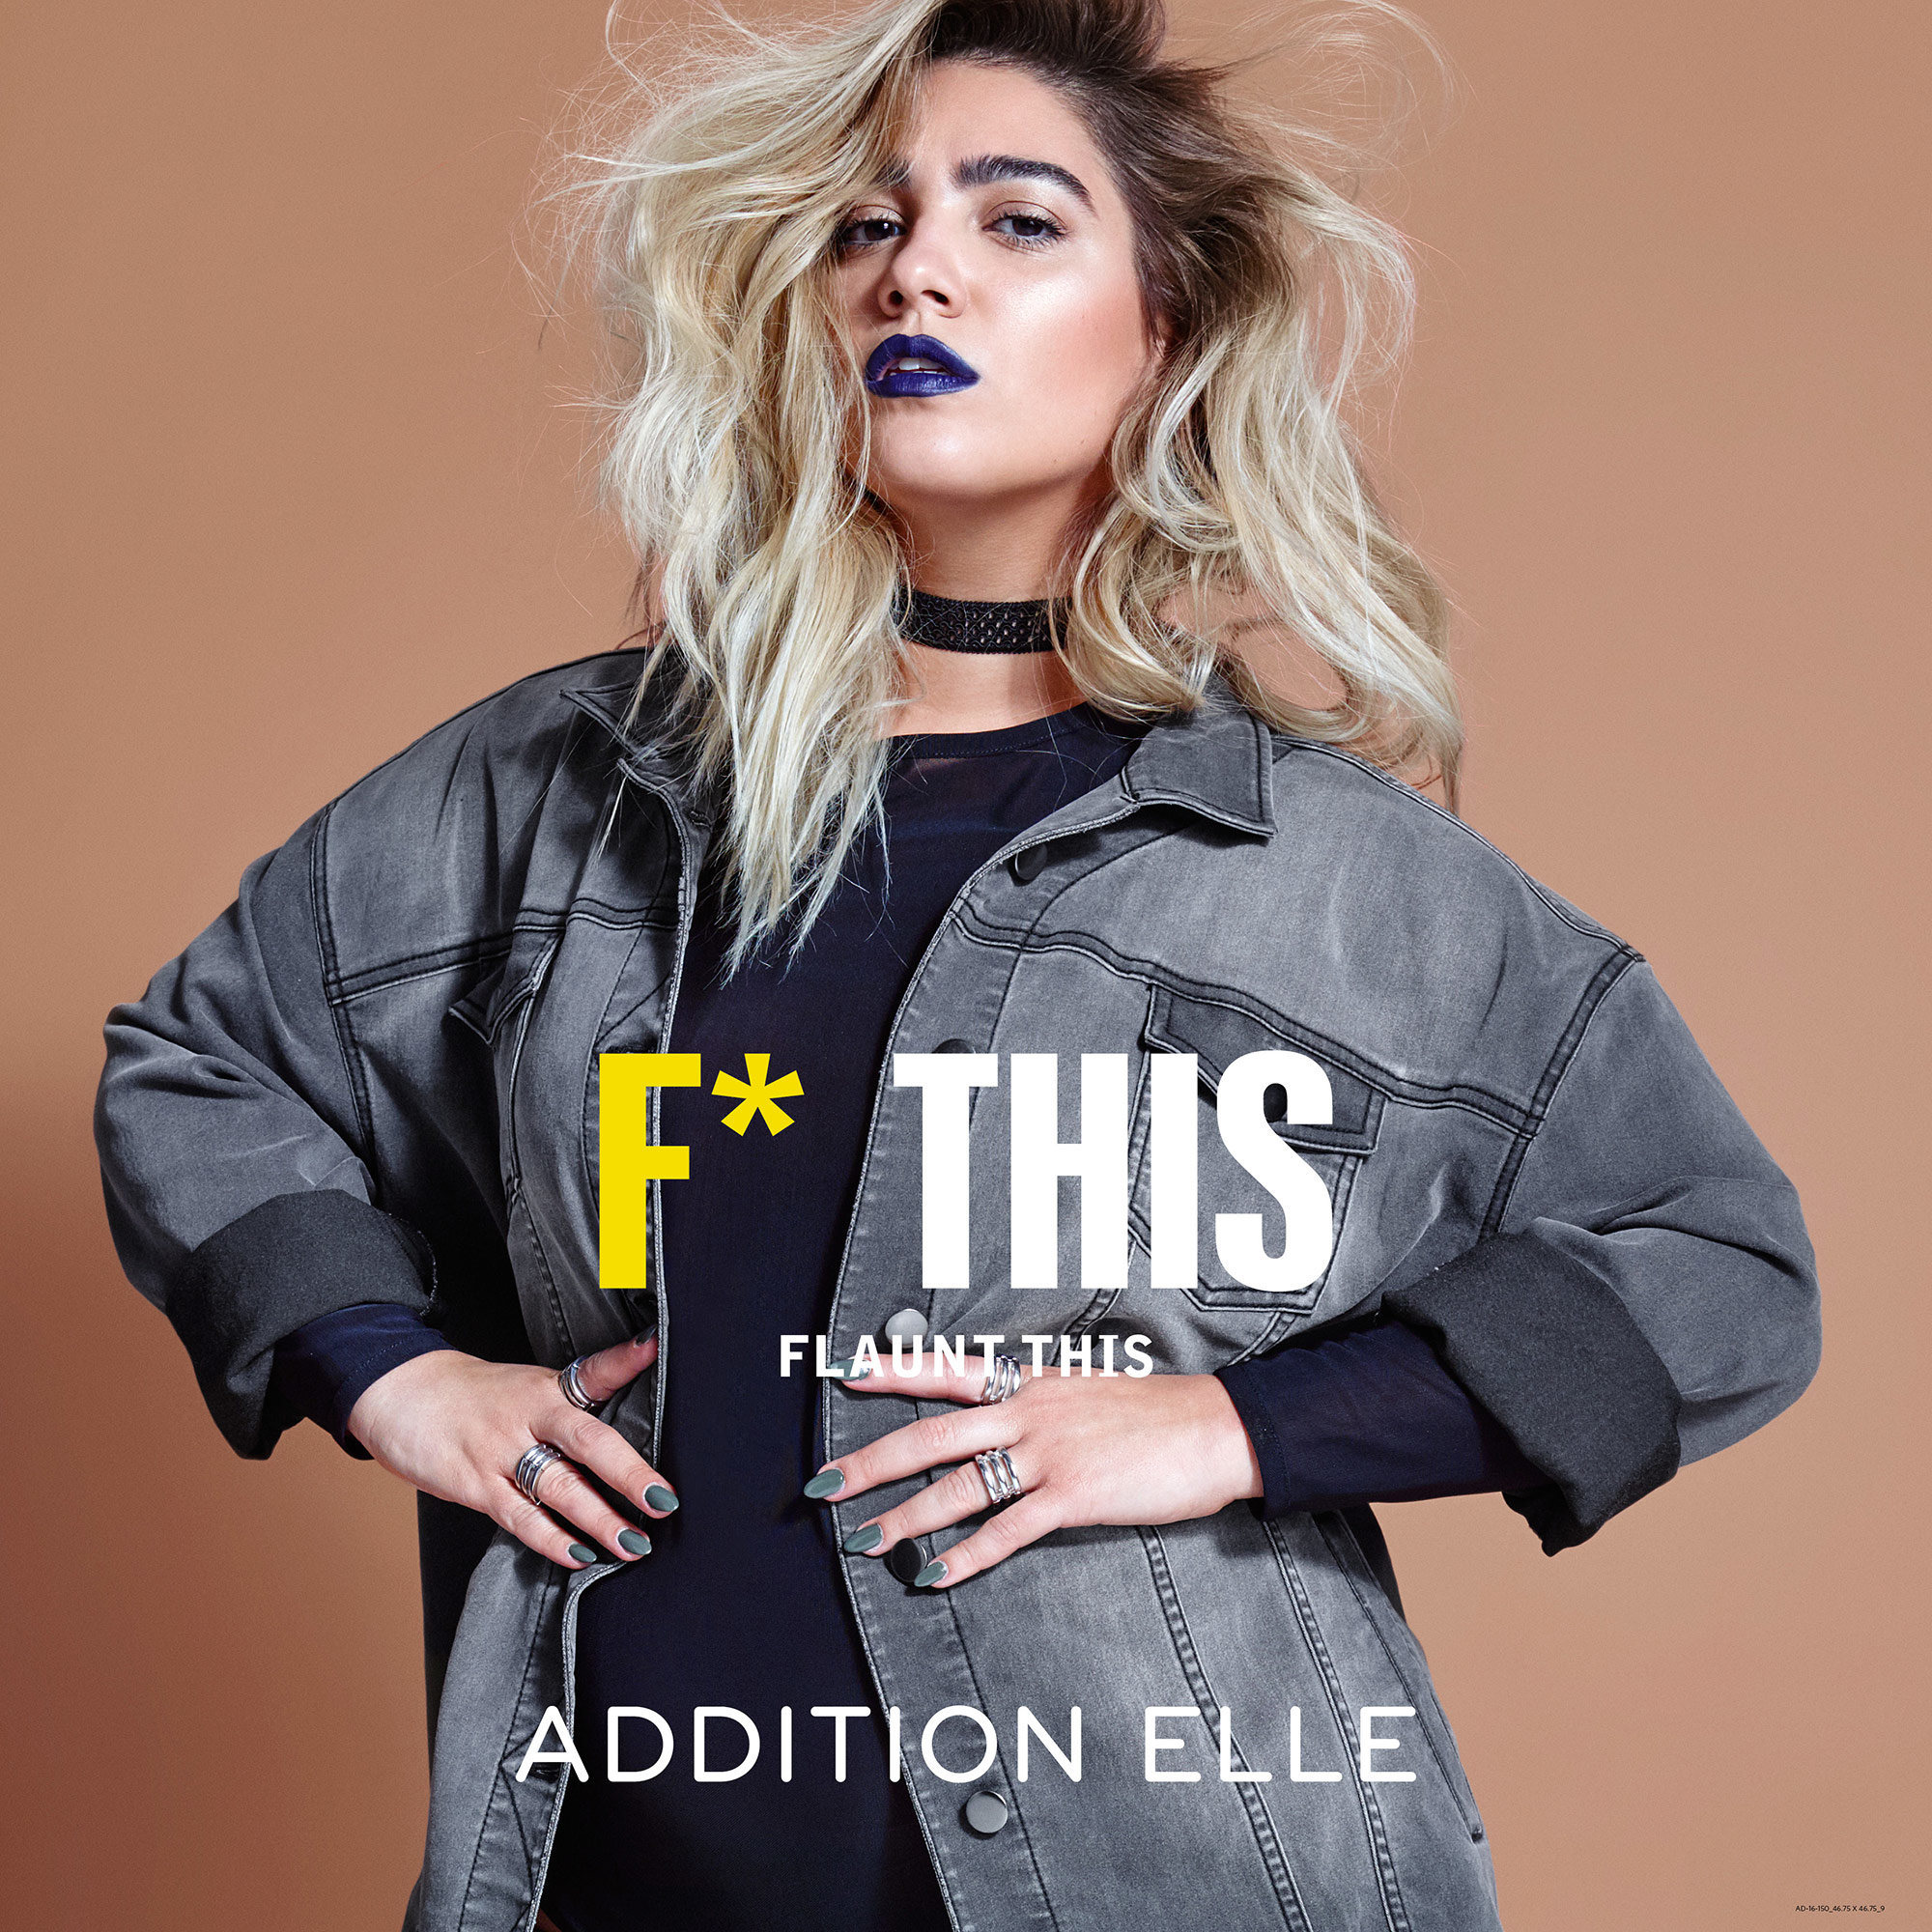 Addition Elle Campaign - Embed 4